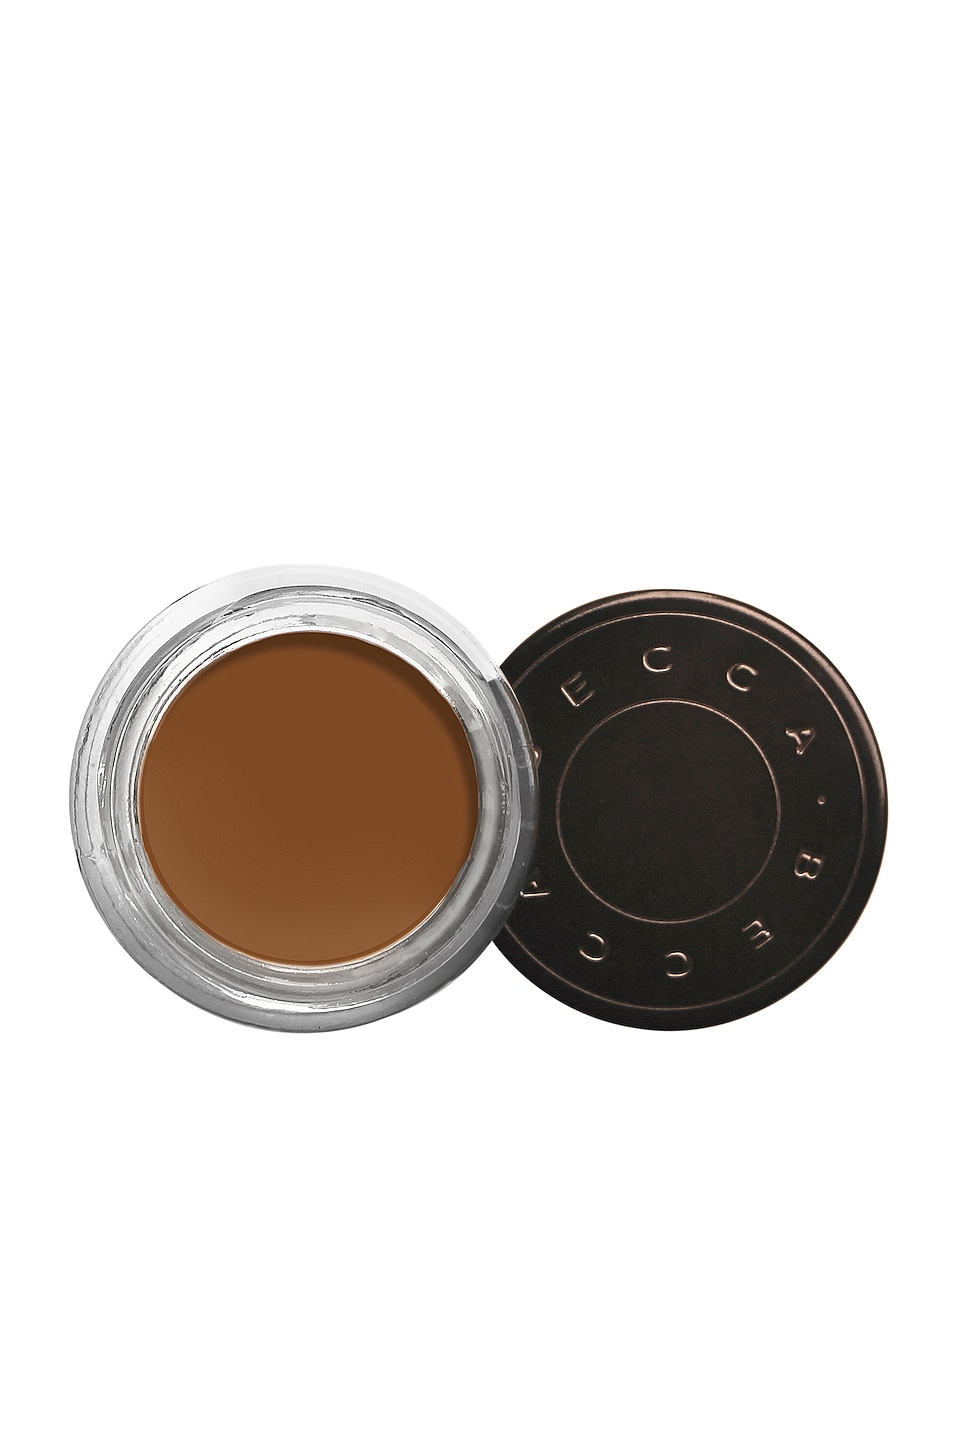 BECCA Ultimate Coverage Concealing Creme in Treacle